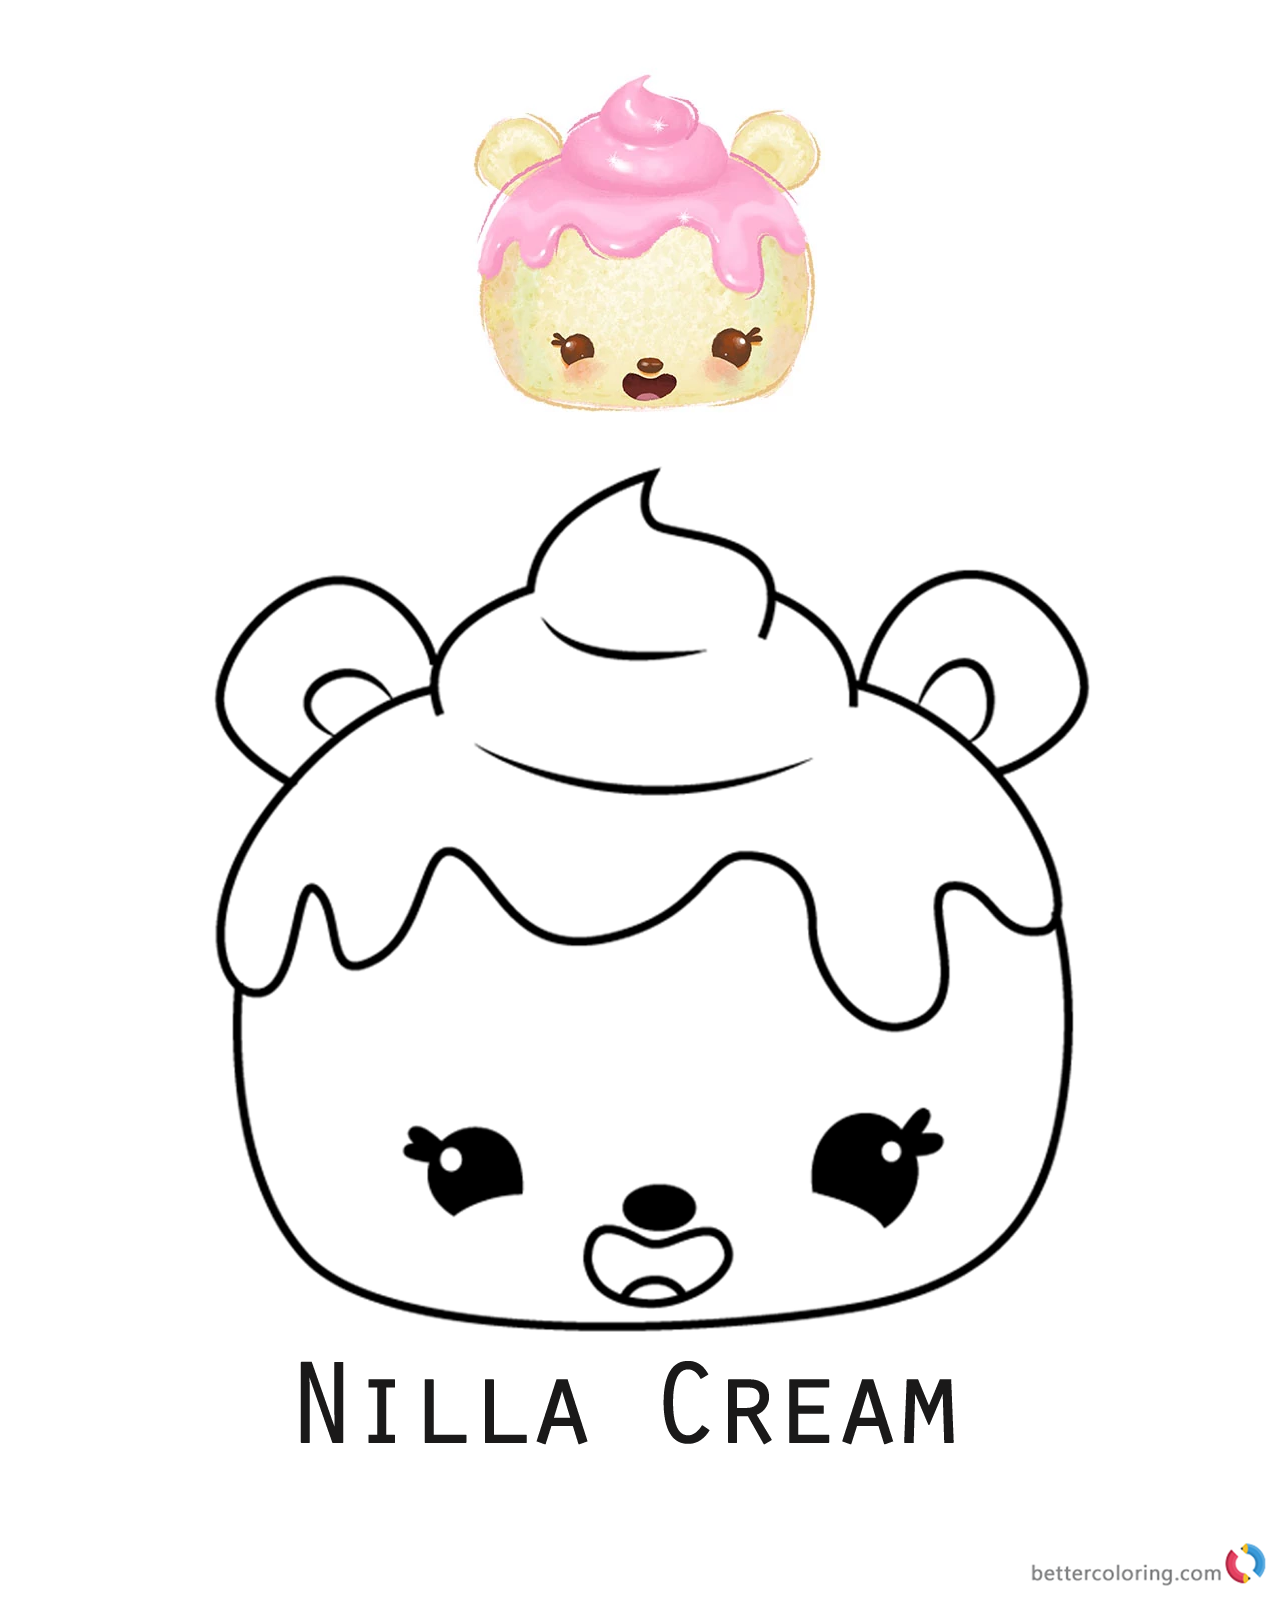 Nilla Cream from Num Noms coloring pages printable